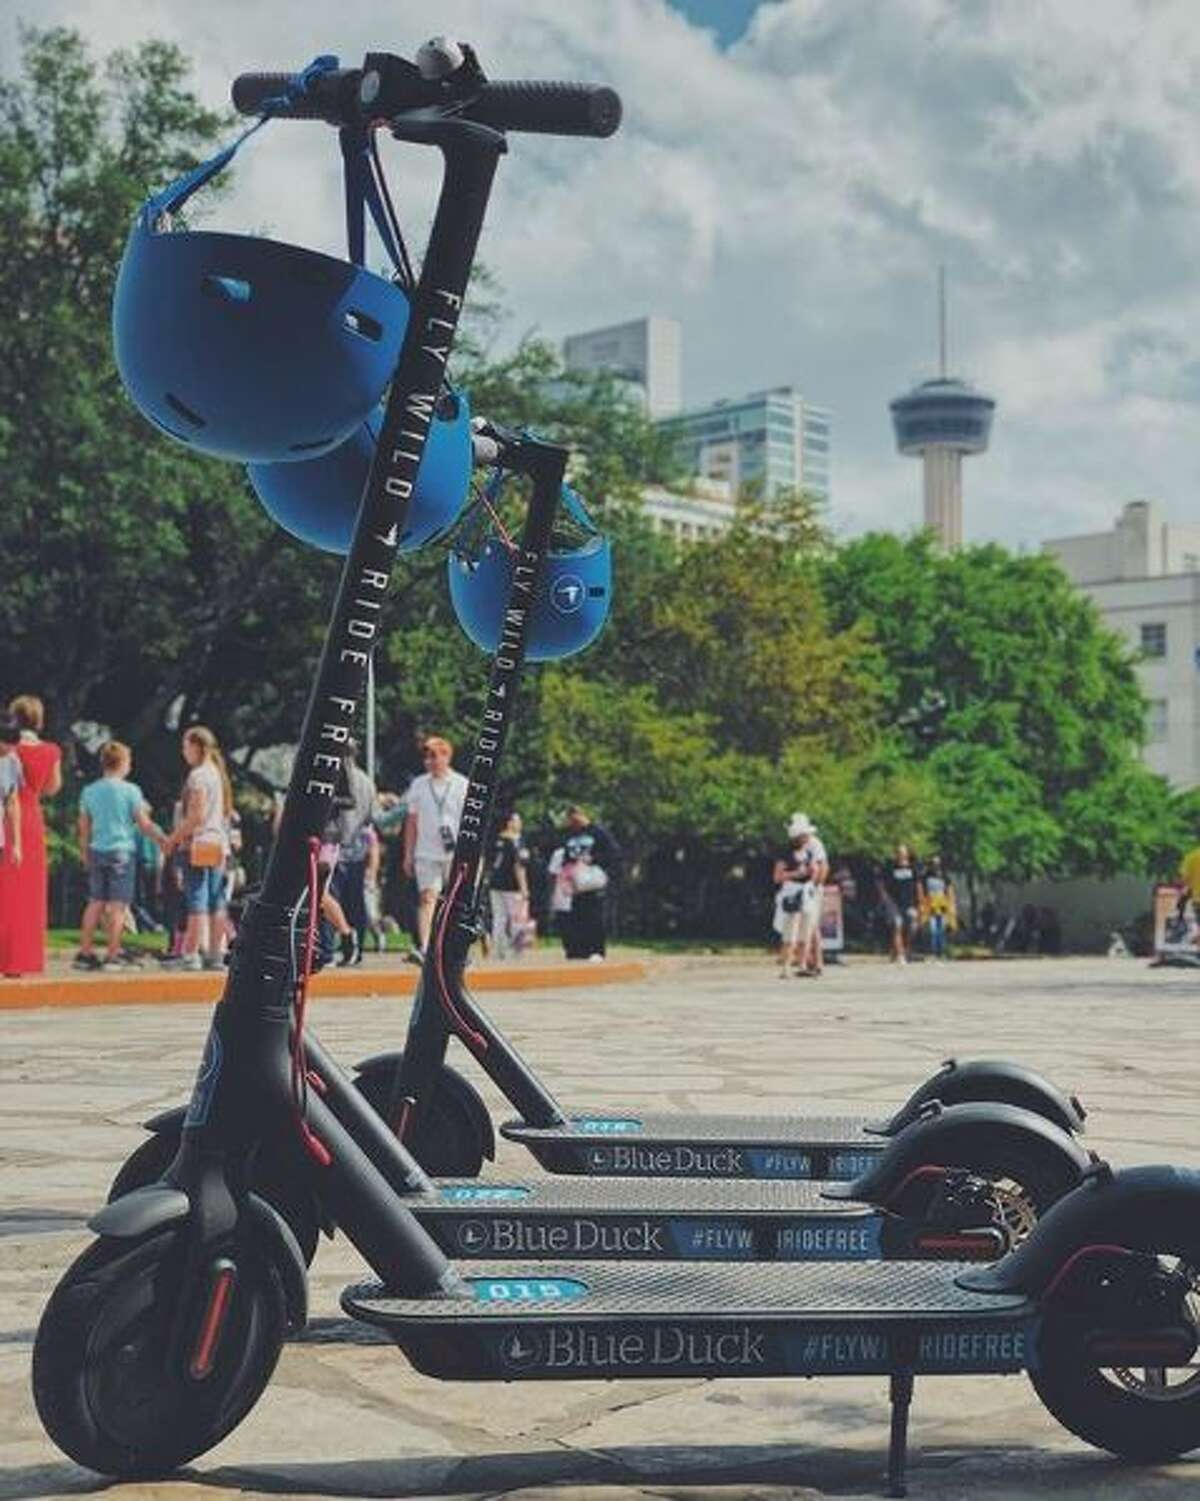 Blue Duck Scooters, an electric scooter company, plans to launch dozens of scooters in San Antonio at the beginning of July 2018. Eventually, the company plans to have about 1,000 of the scooters in San Antonio. The company targets college students and young professionals rather than tourists and visitors. (Courtesy of Blue Duck Scooters)